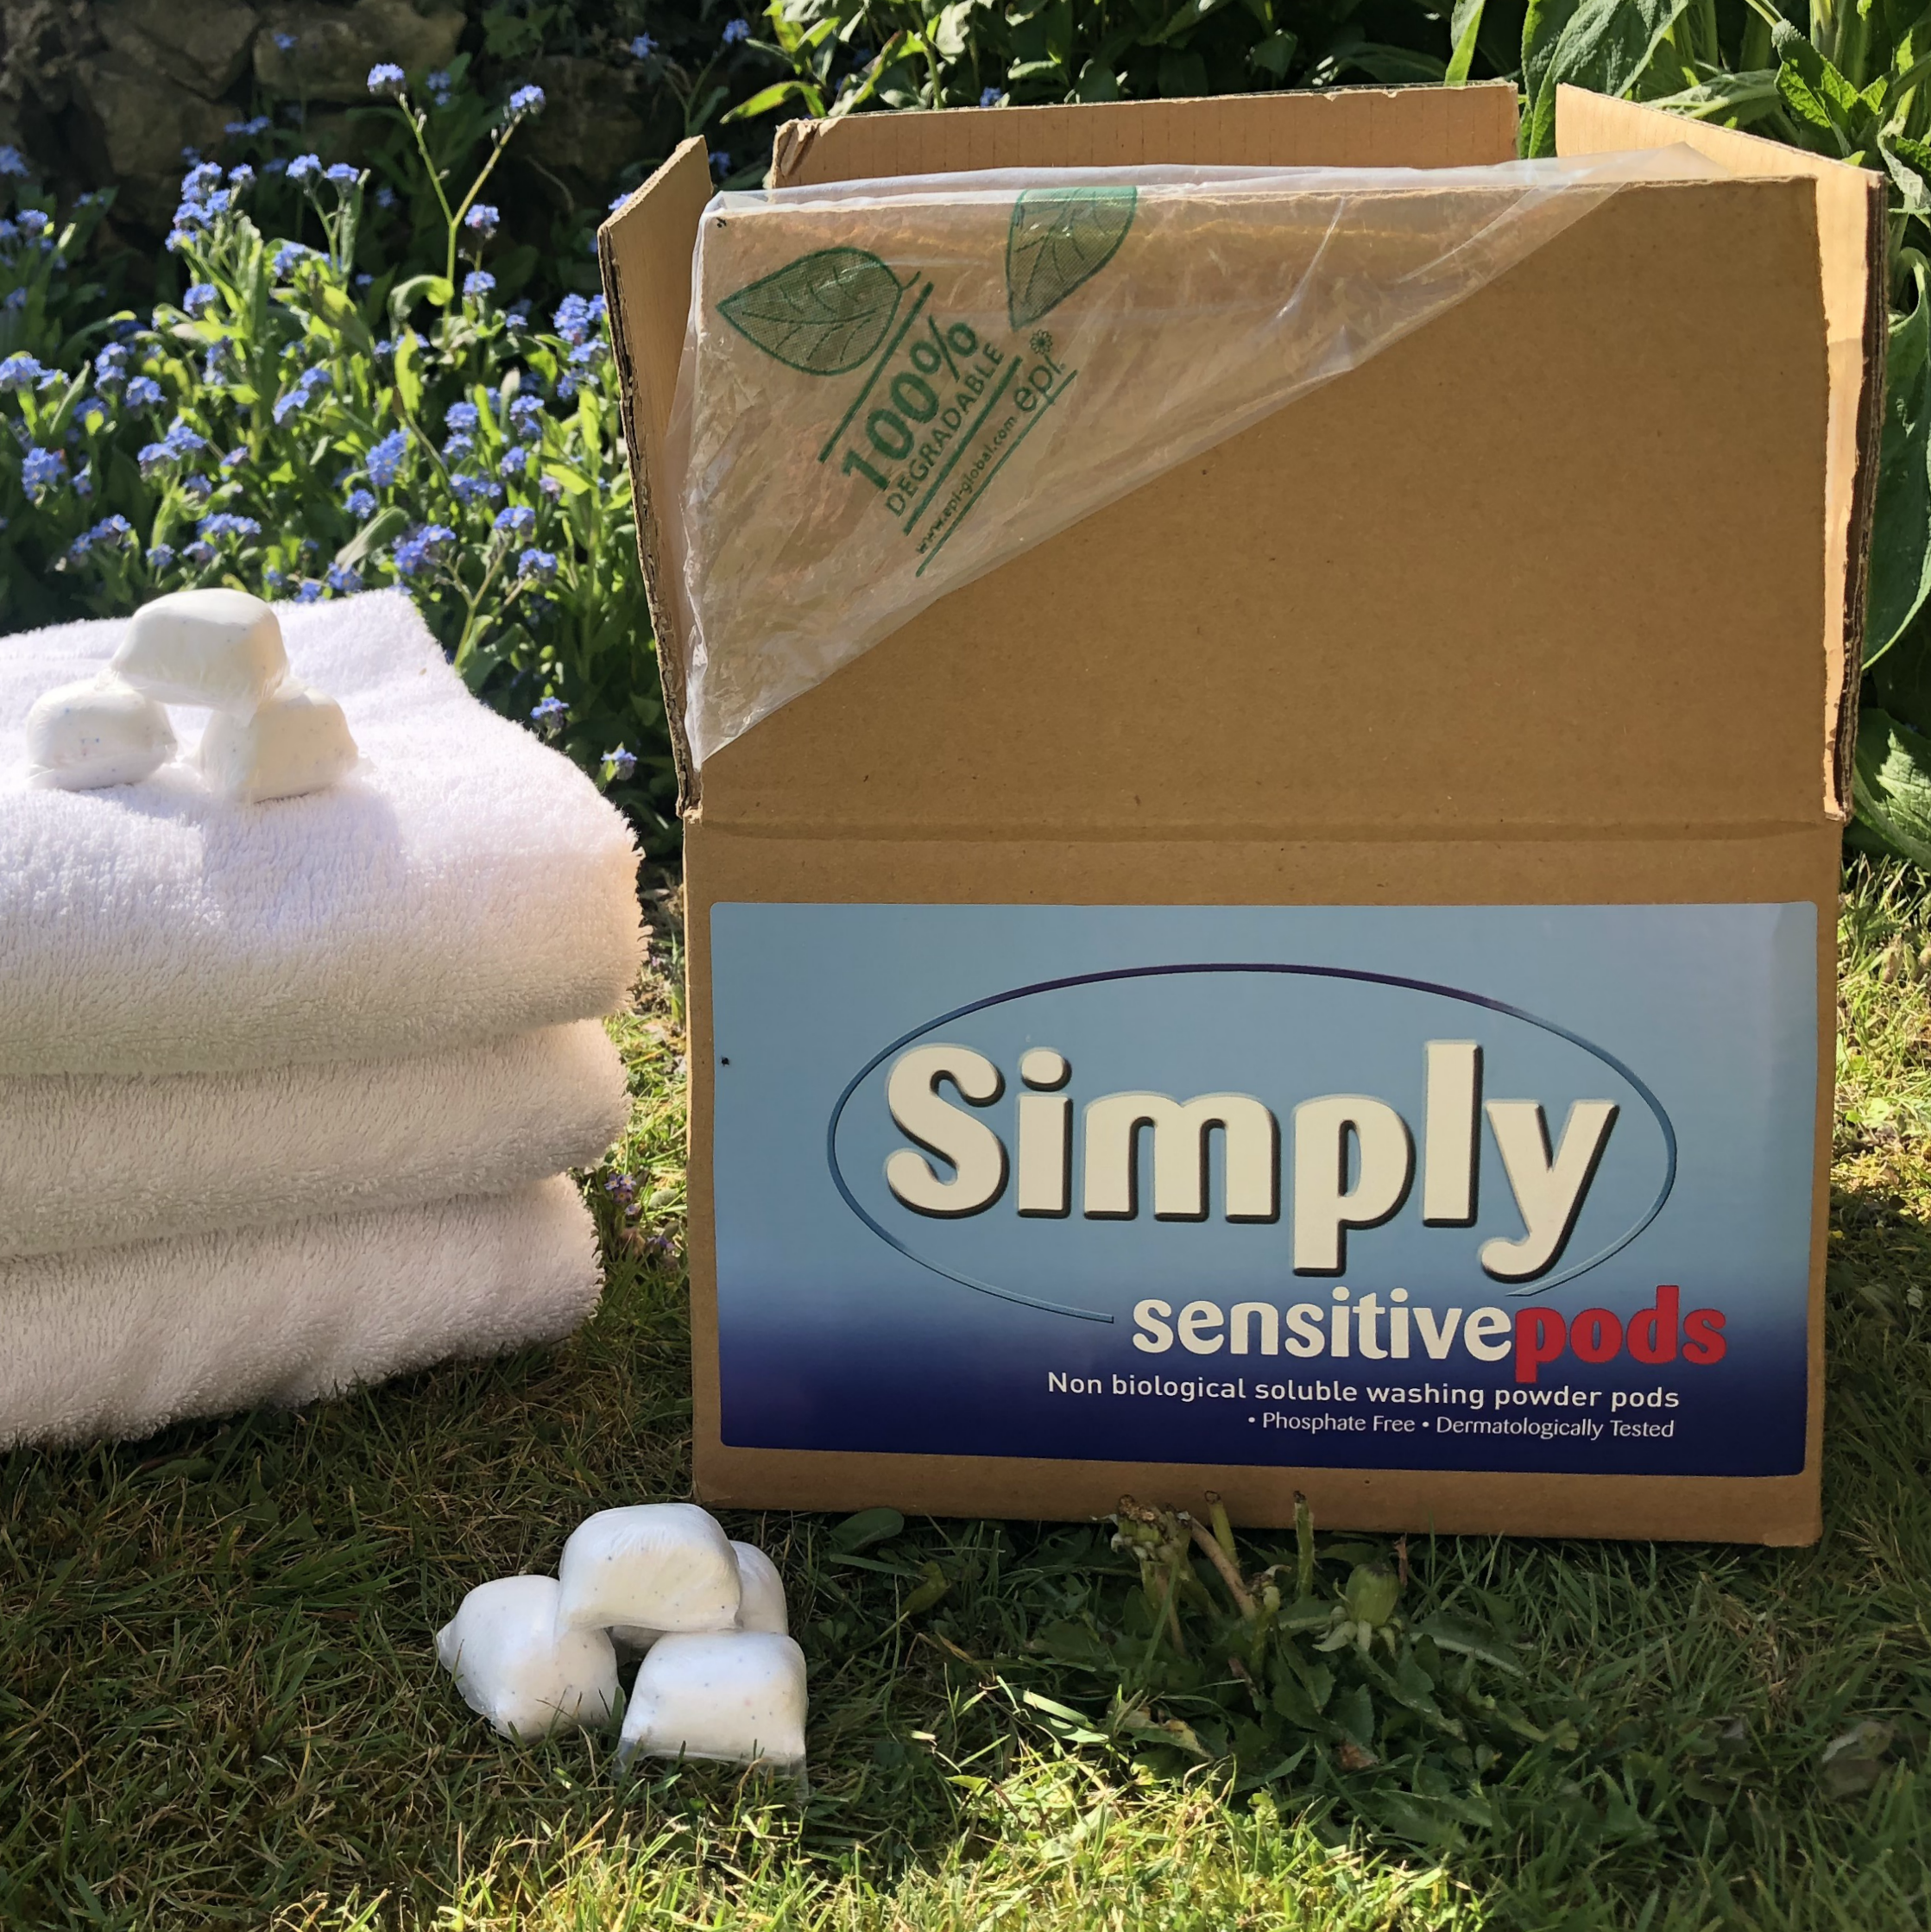 200 Simply Sensitive non-biological laundry powder-tabs